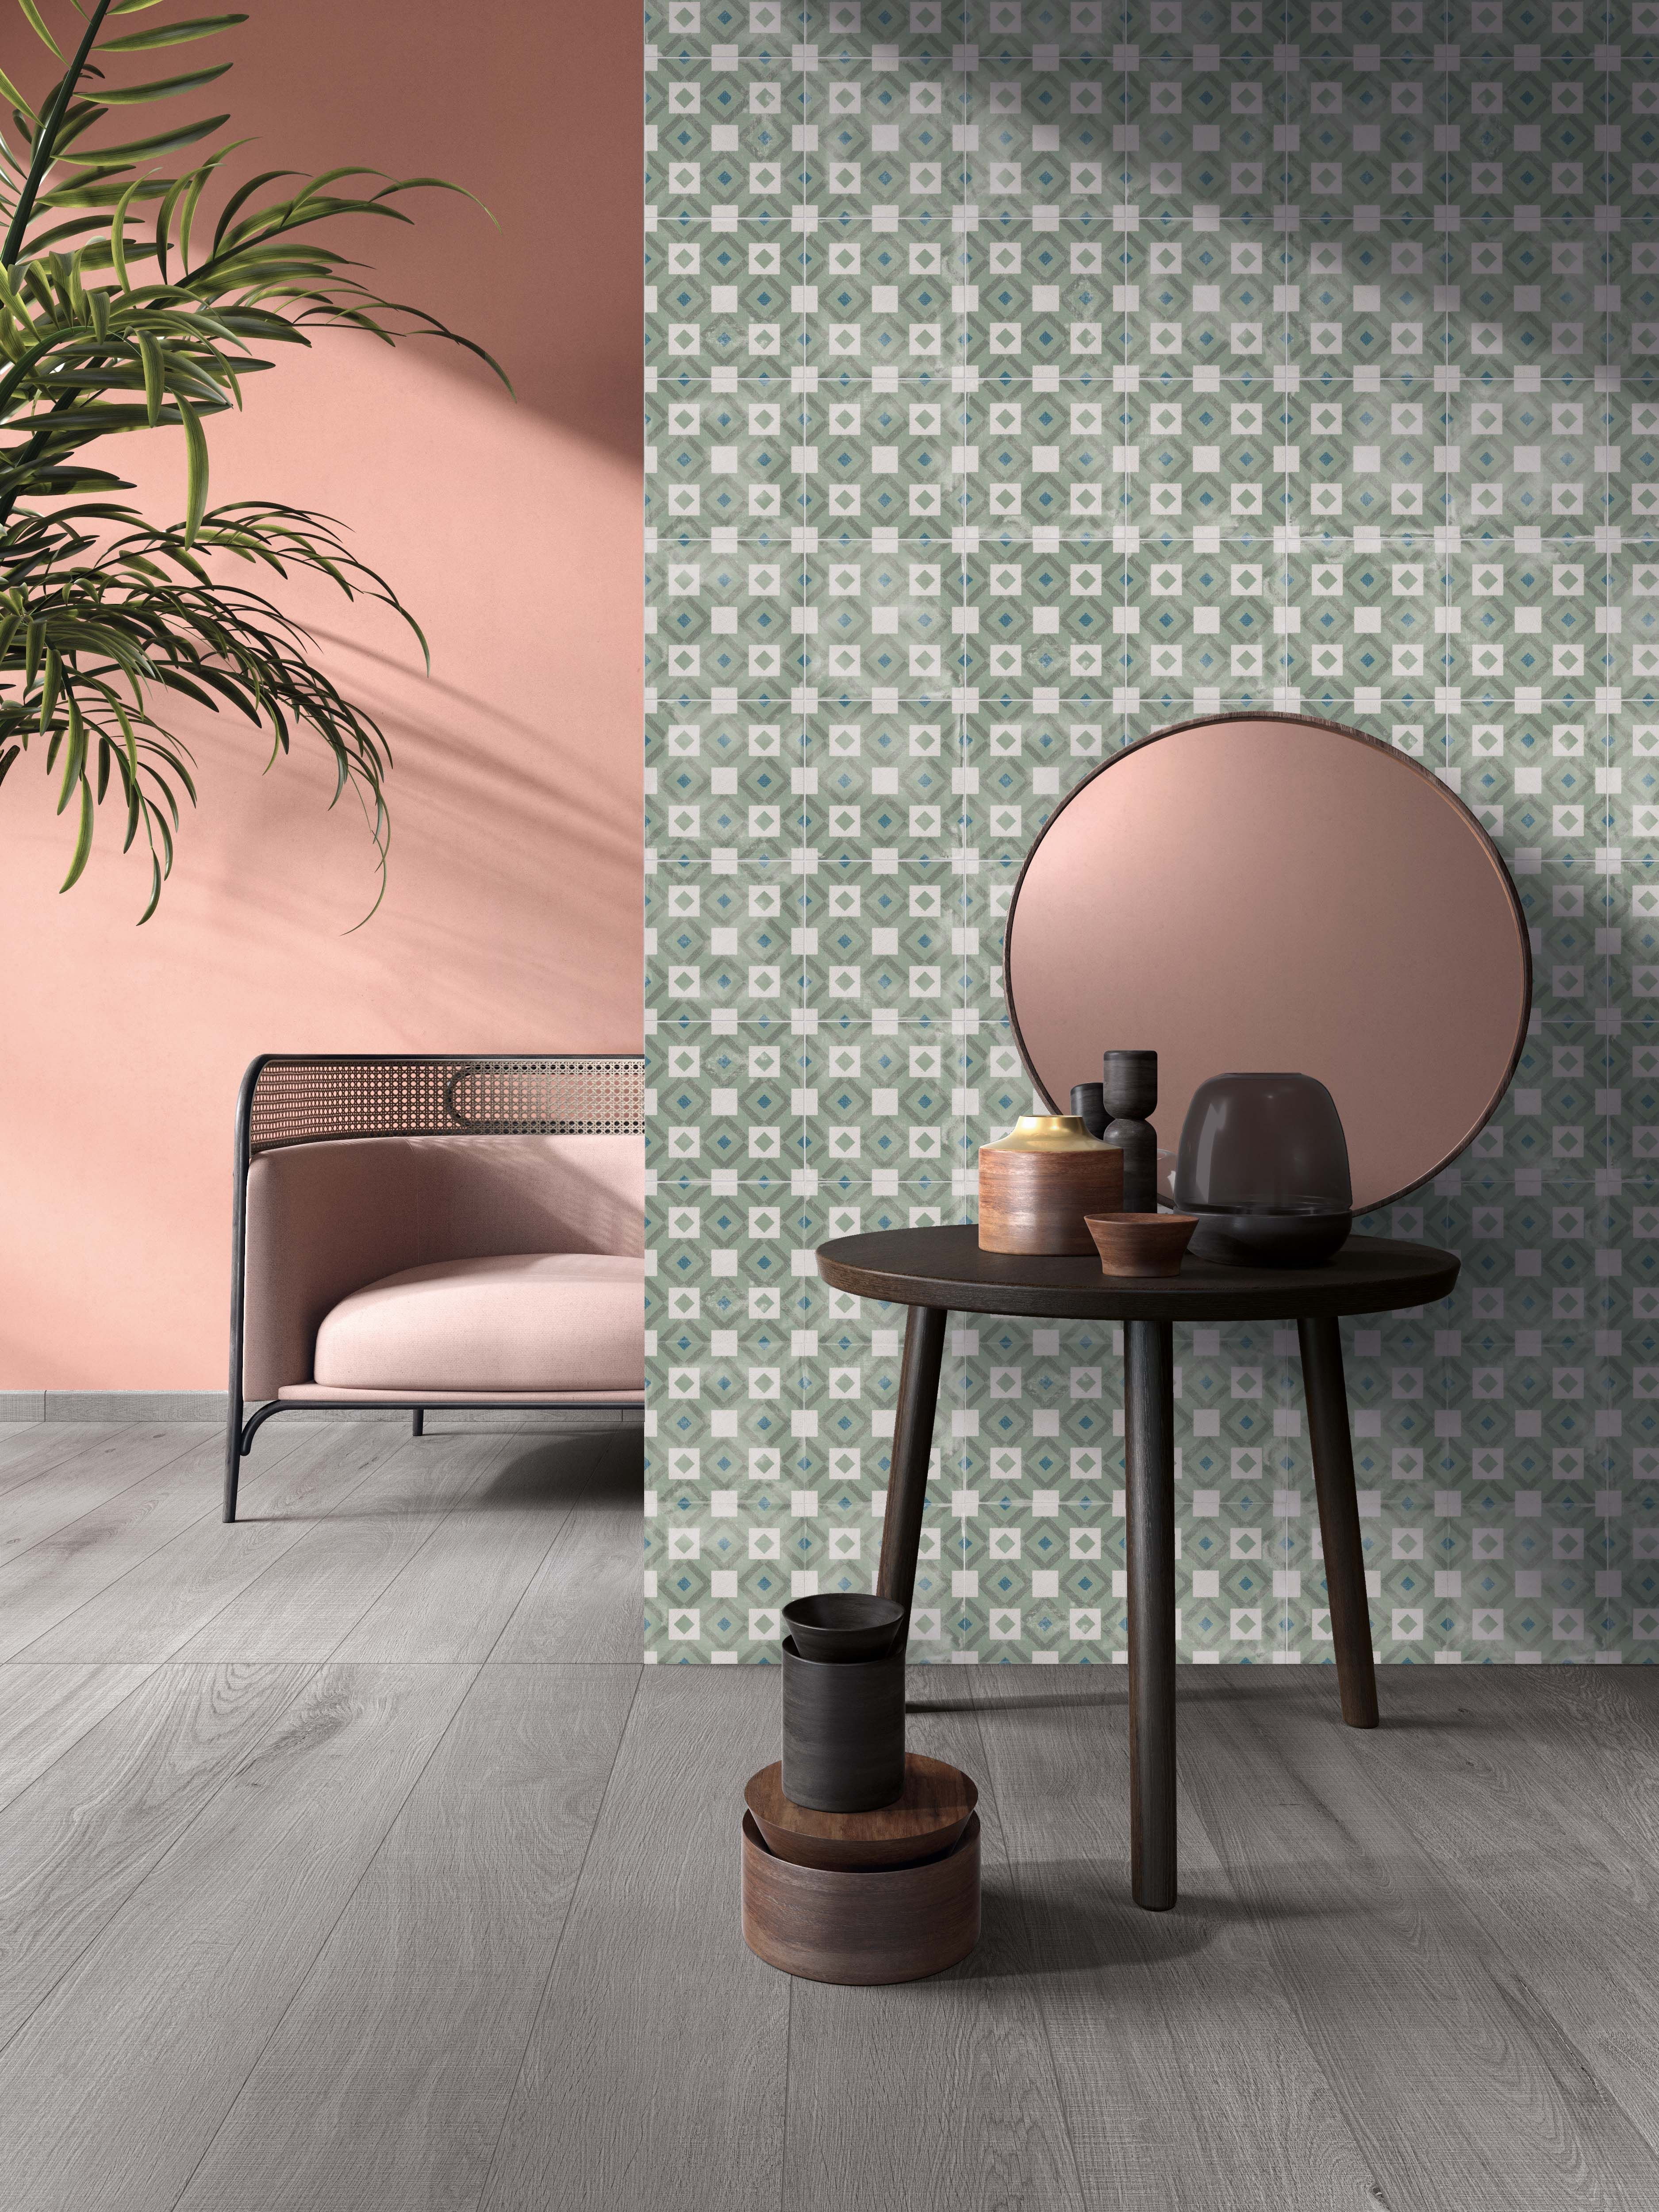 Tiles Design For Living Room Wall: Multicolor Mosaic Effect Floor & Wall Tiles For A Living